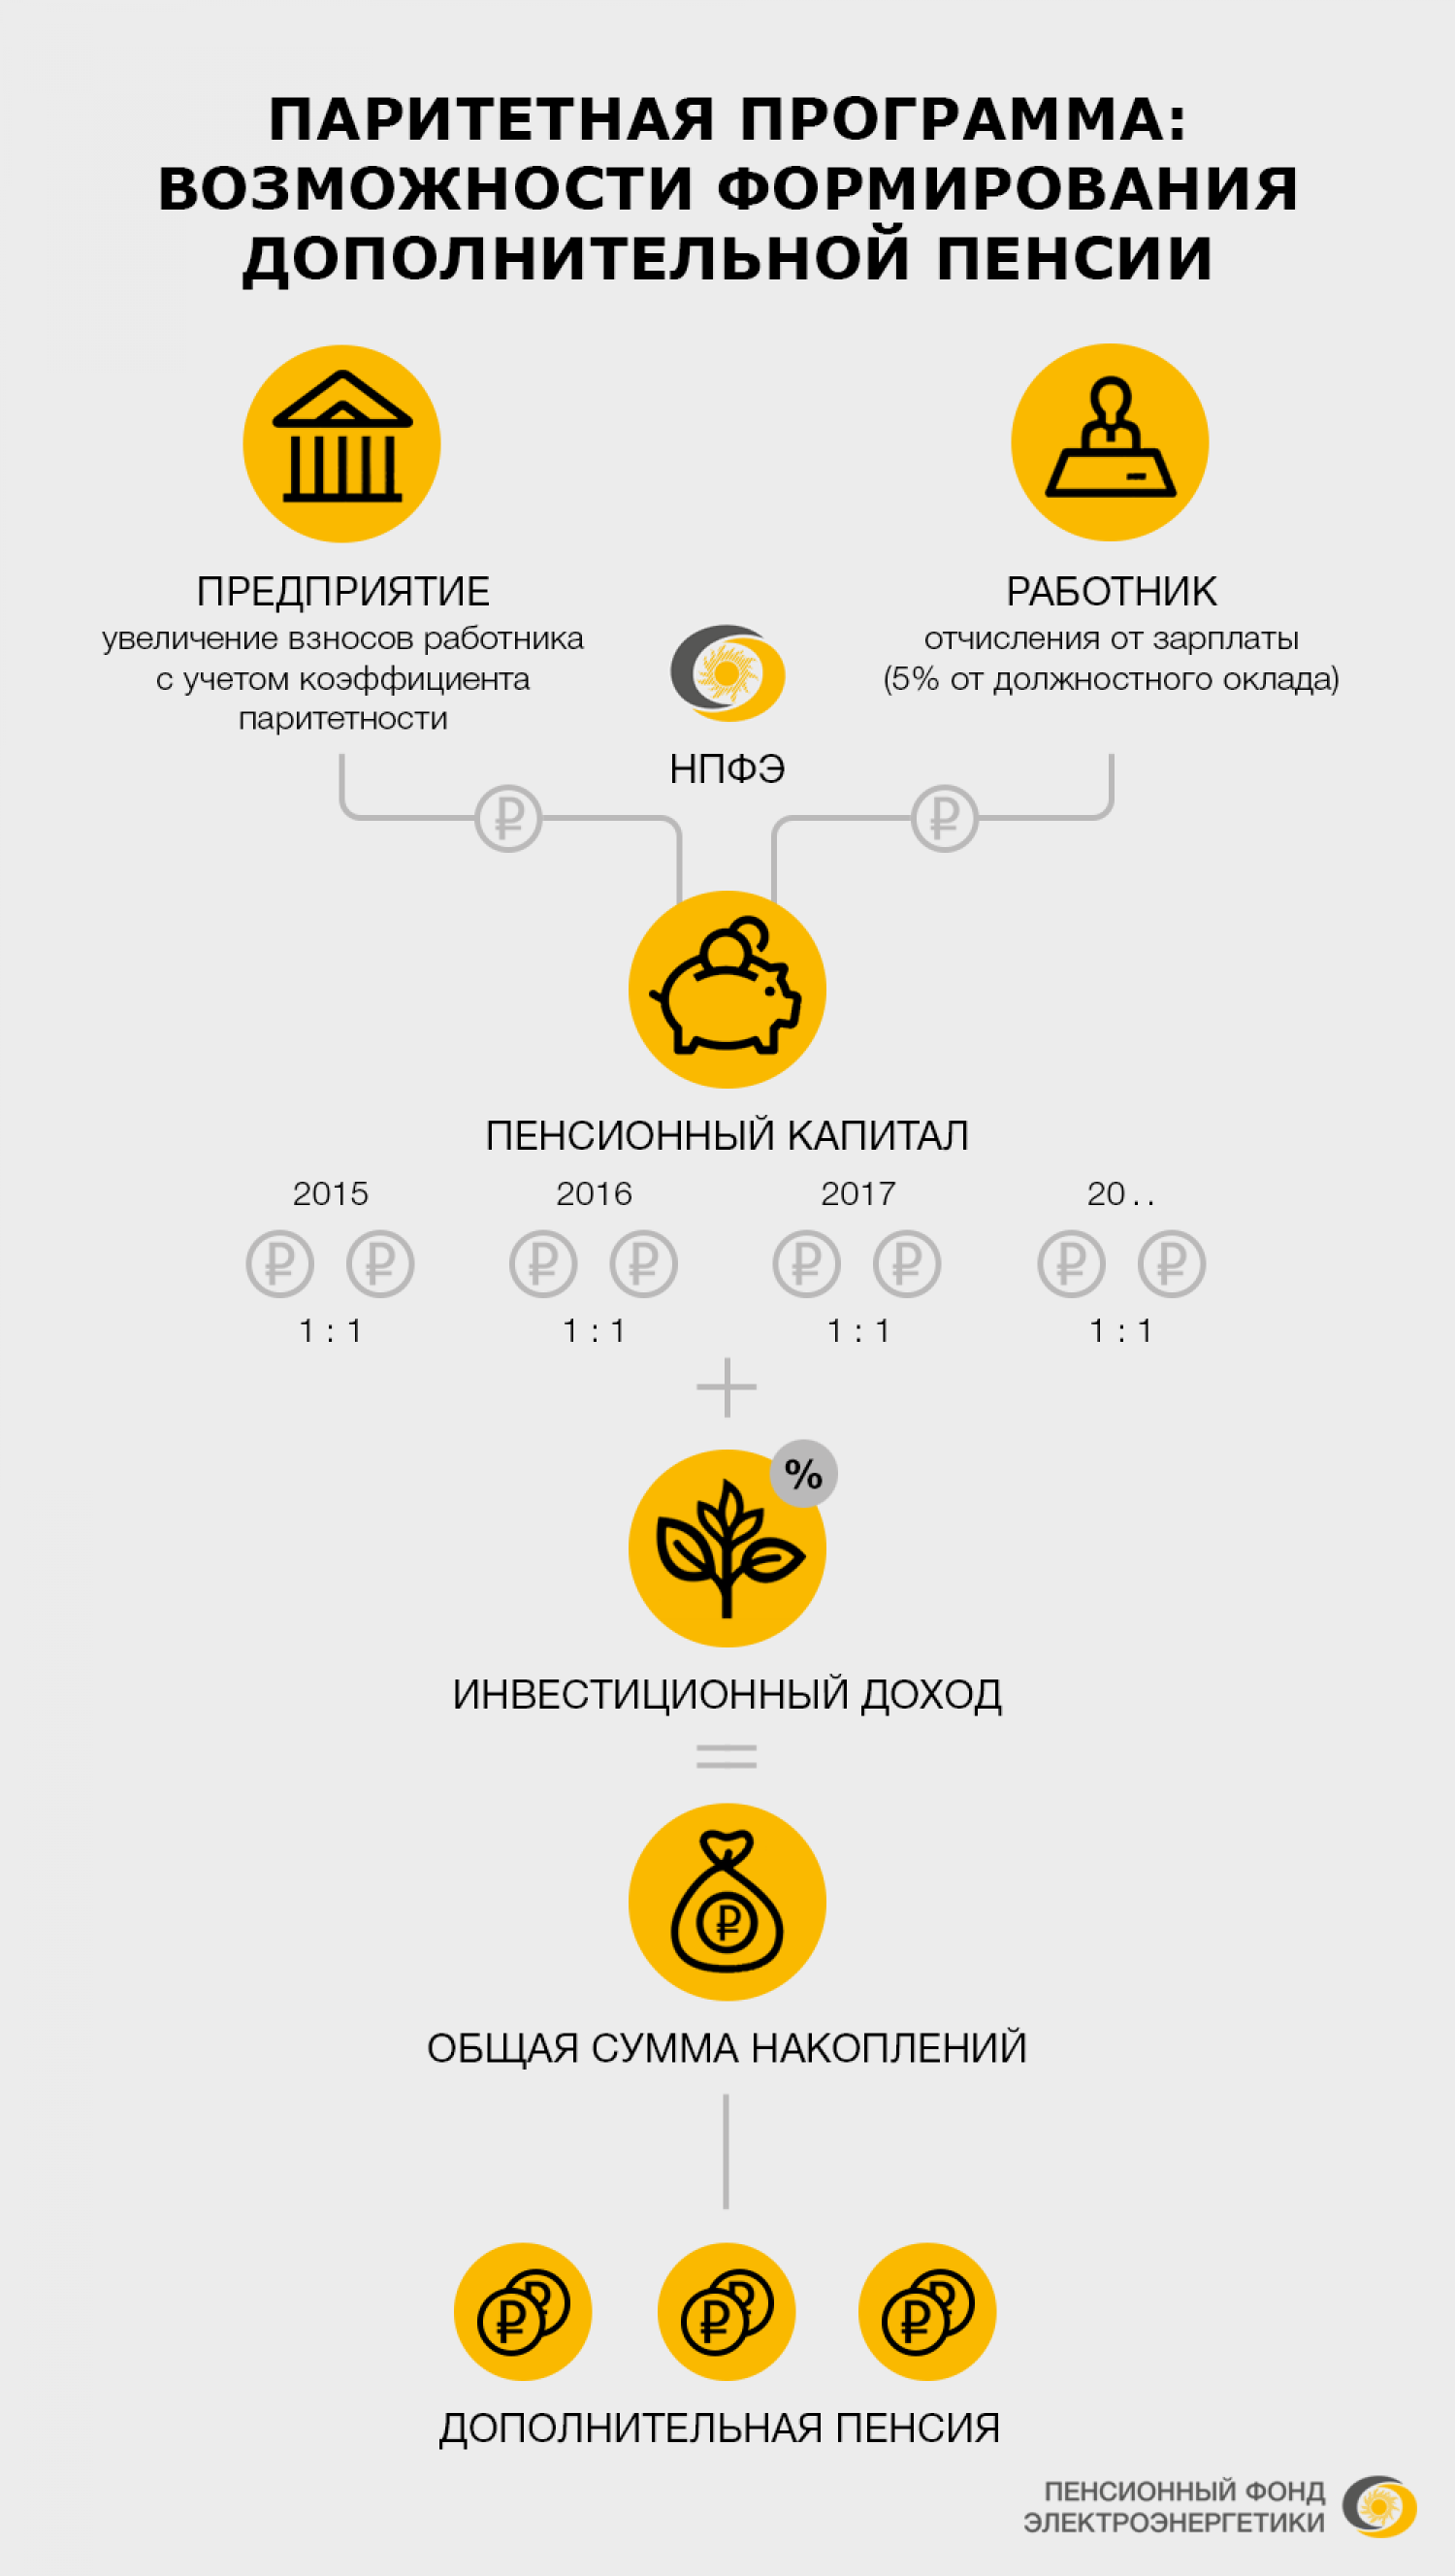 Participation of the pension fund in formation of pension in Russia. Infographic